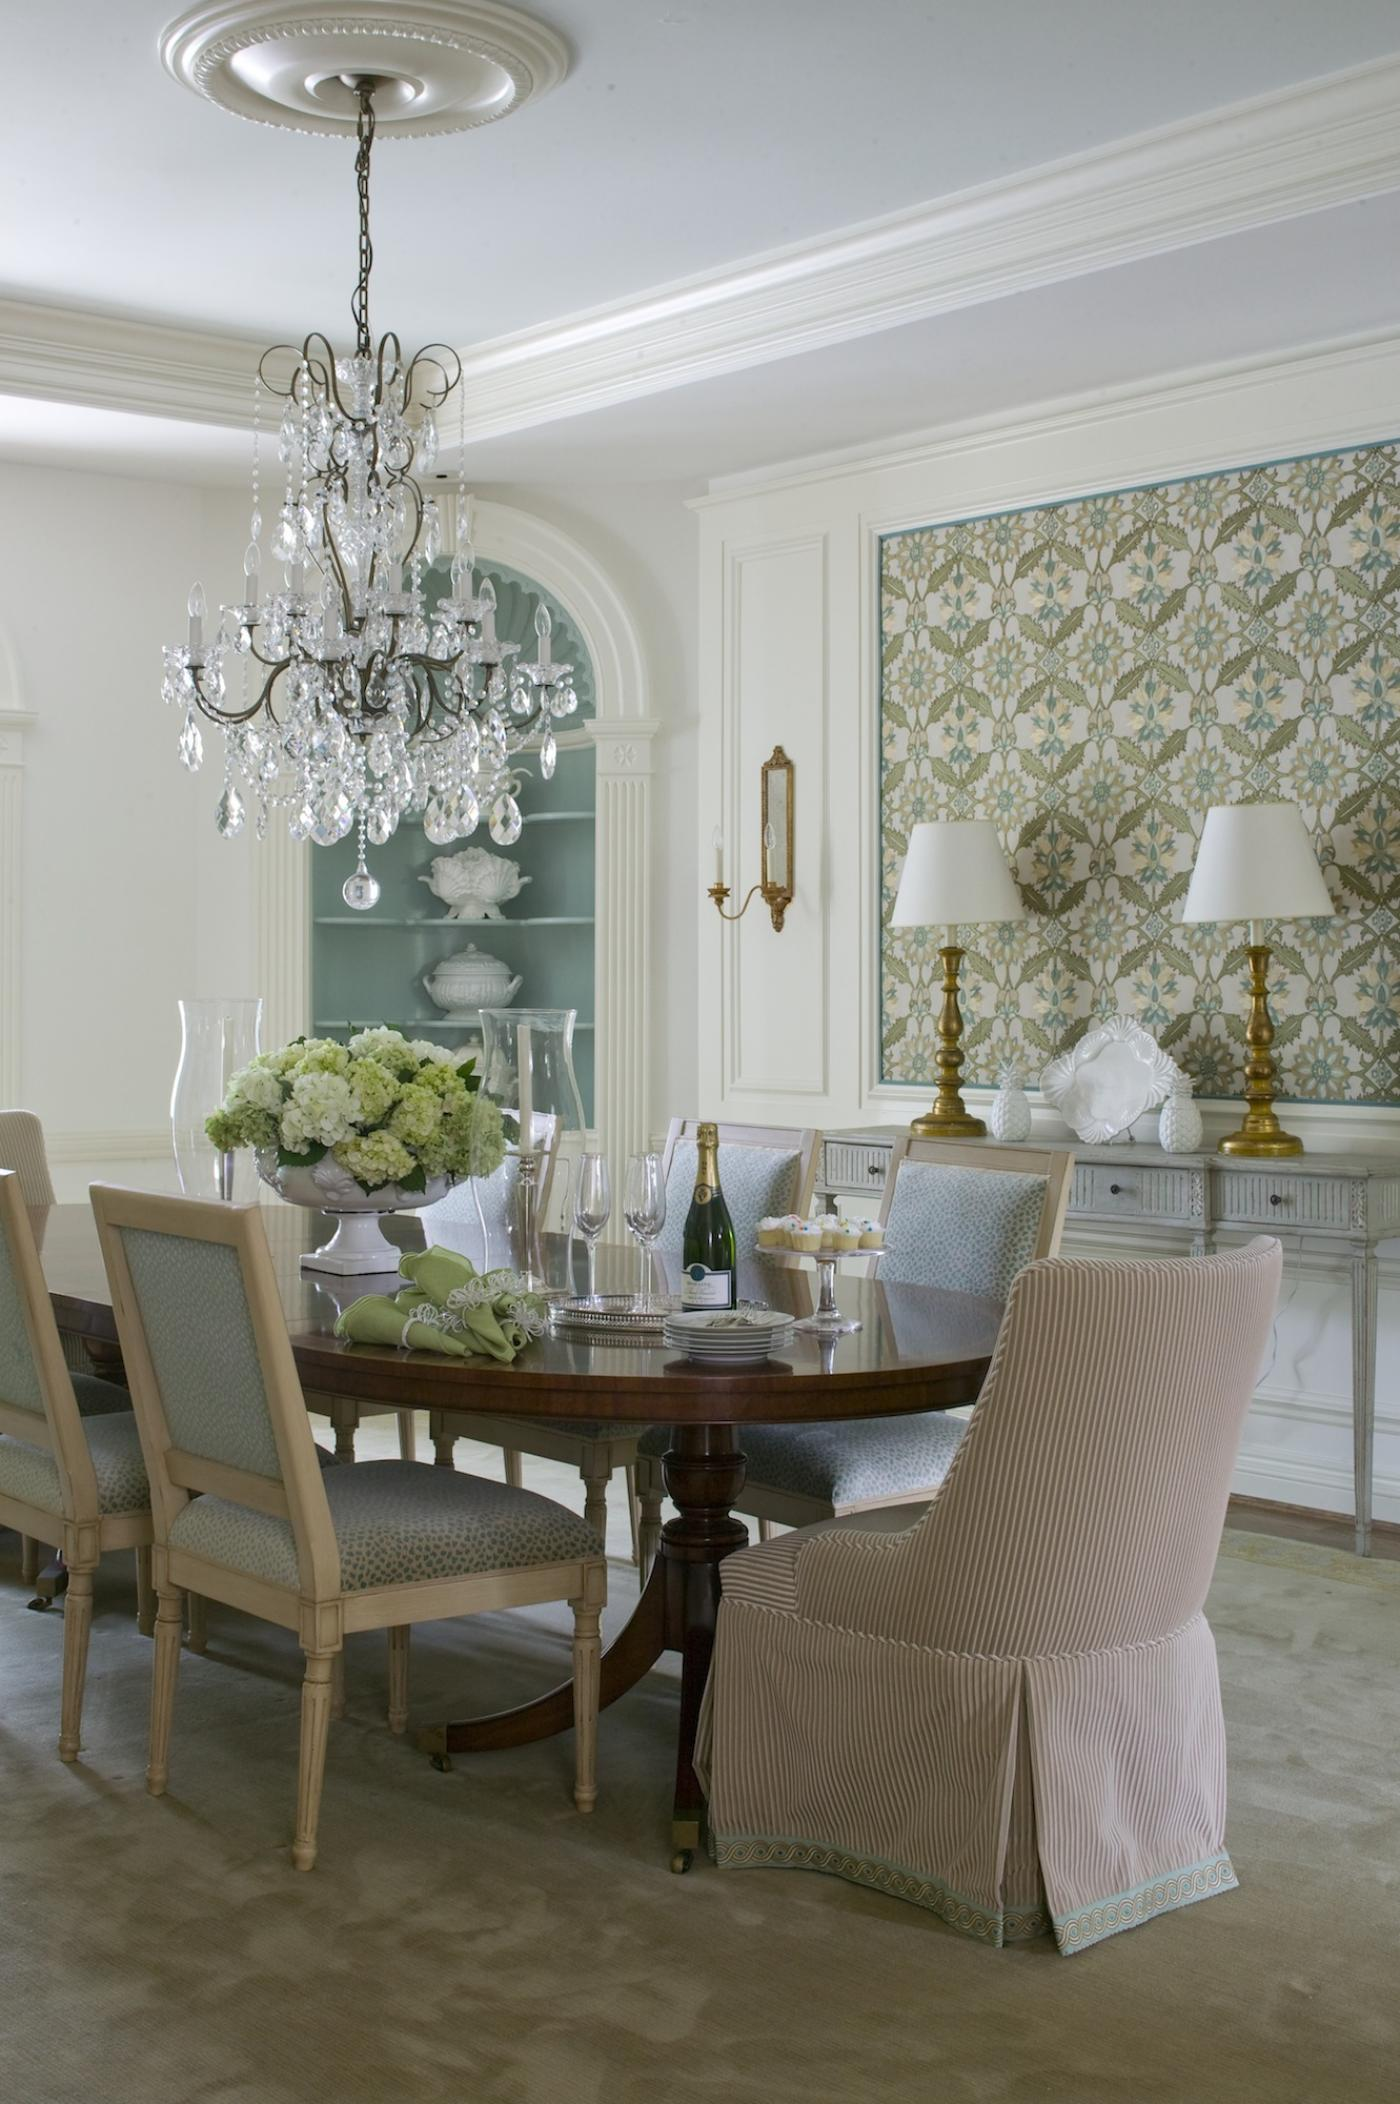 Living pretty in md by kelley proxmire kelley interior design - How to be an interior designer ...